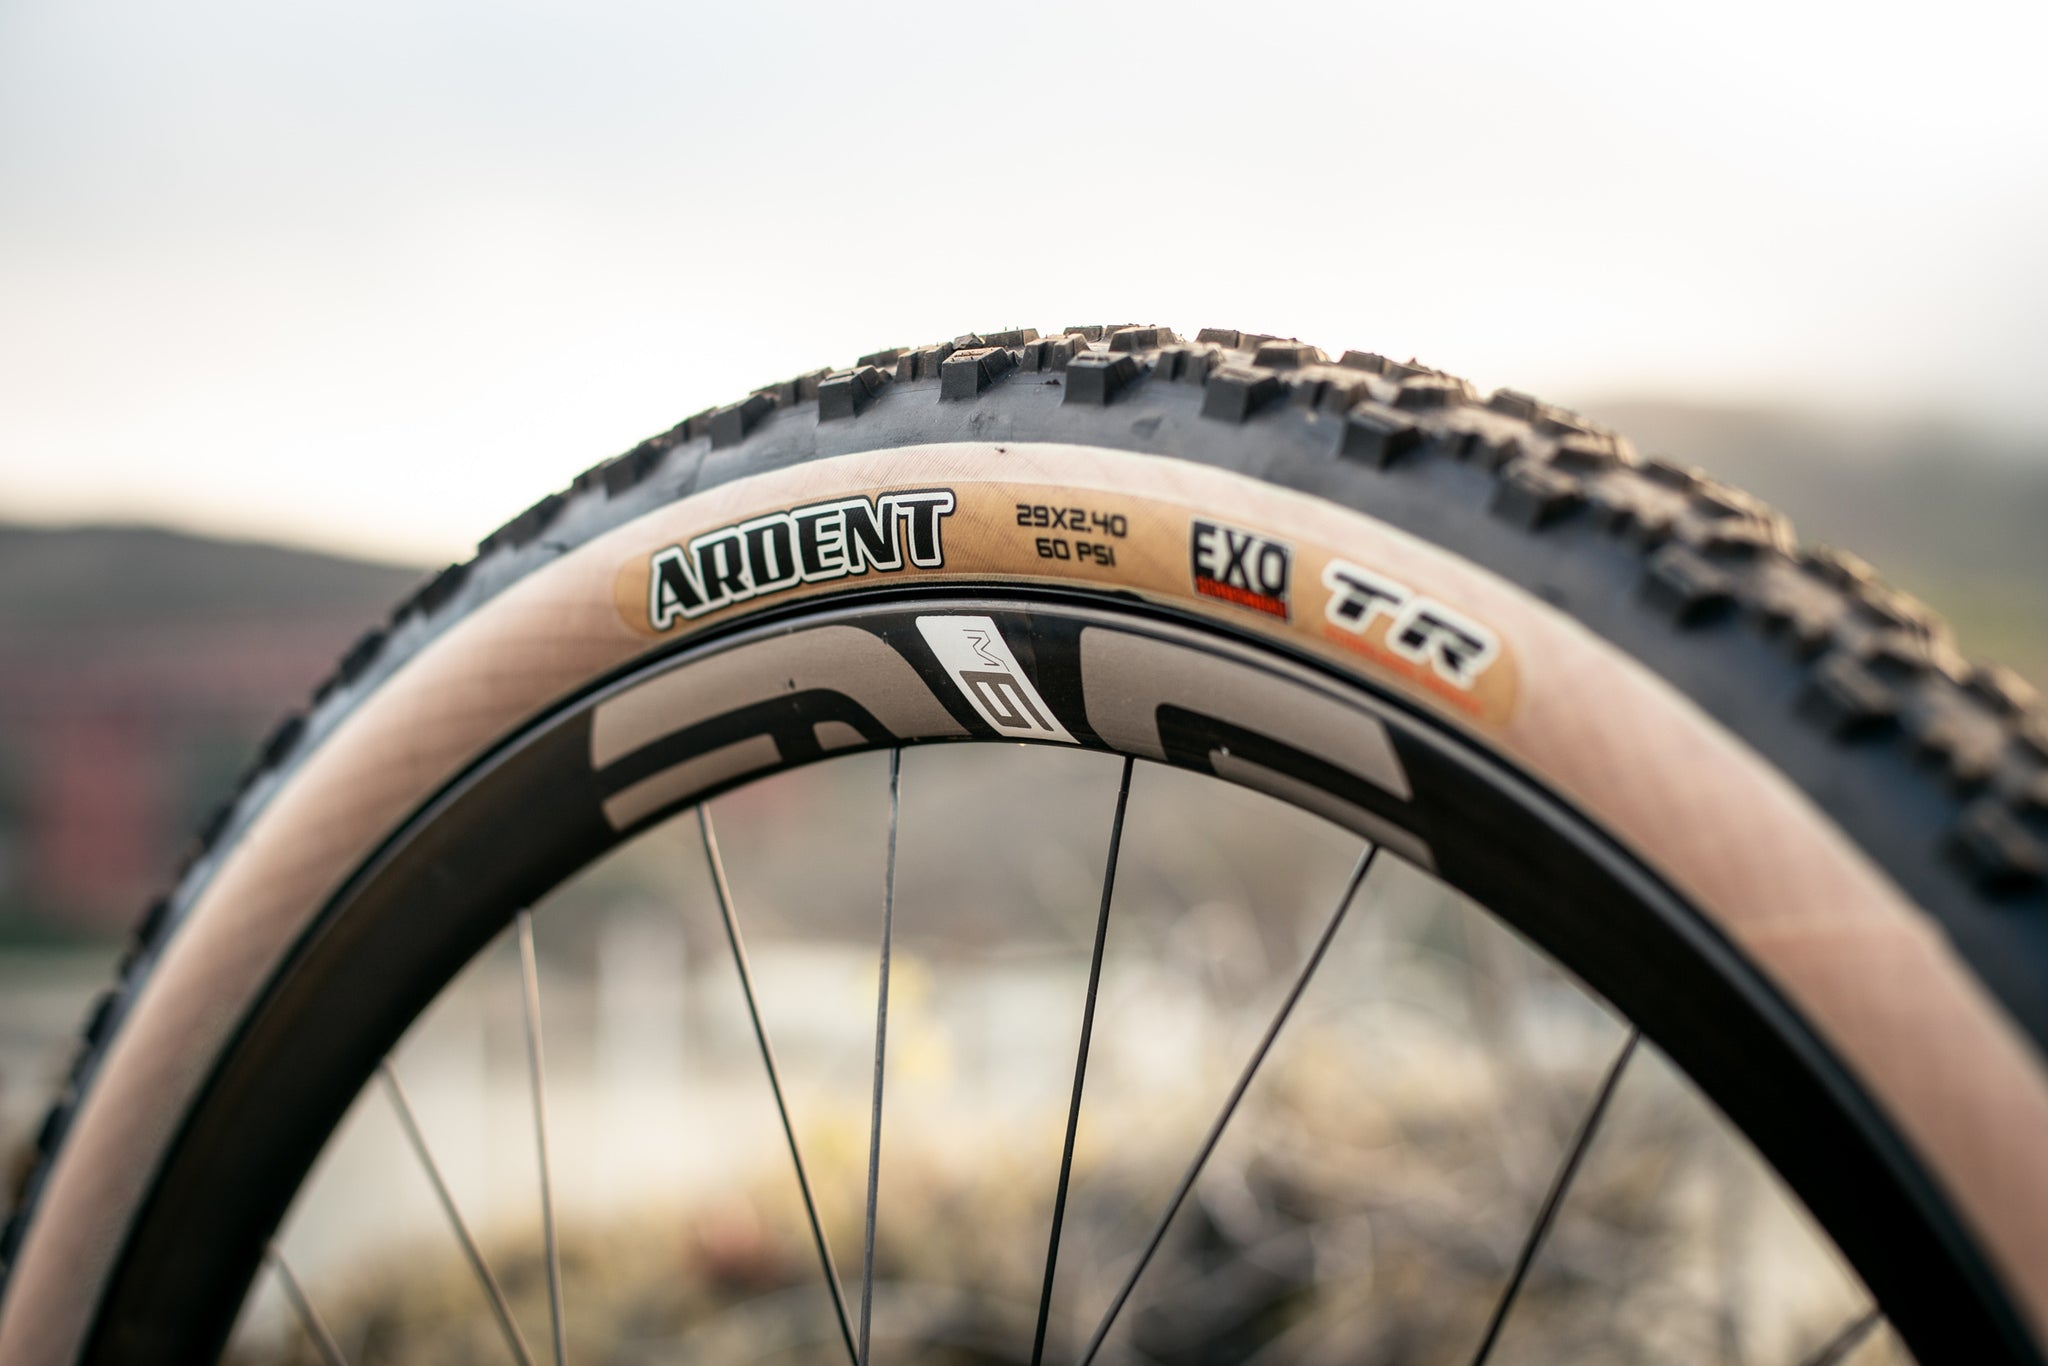 maxxis ardent tan wall 2.4